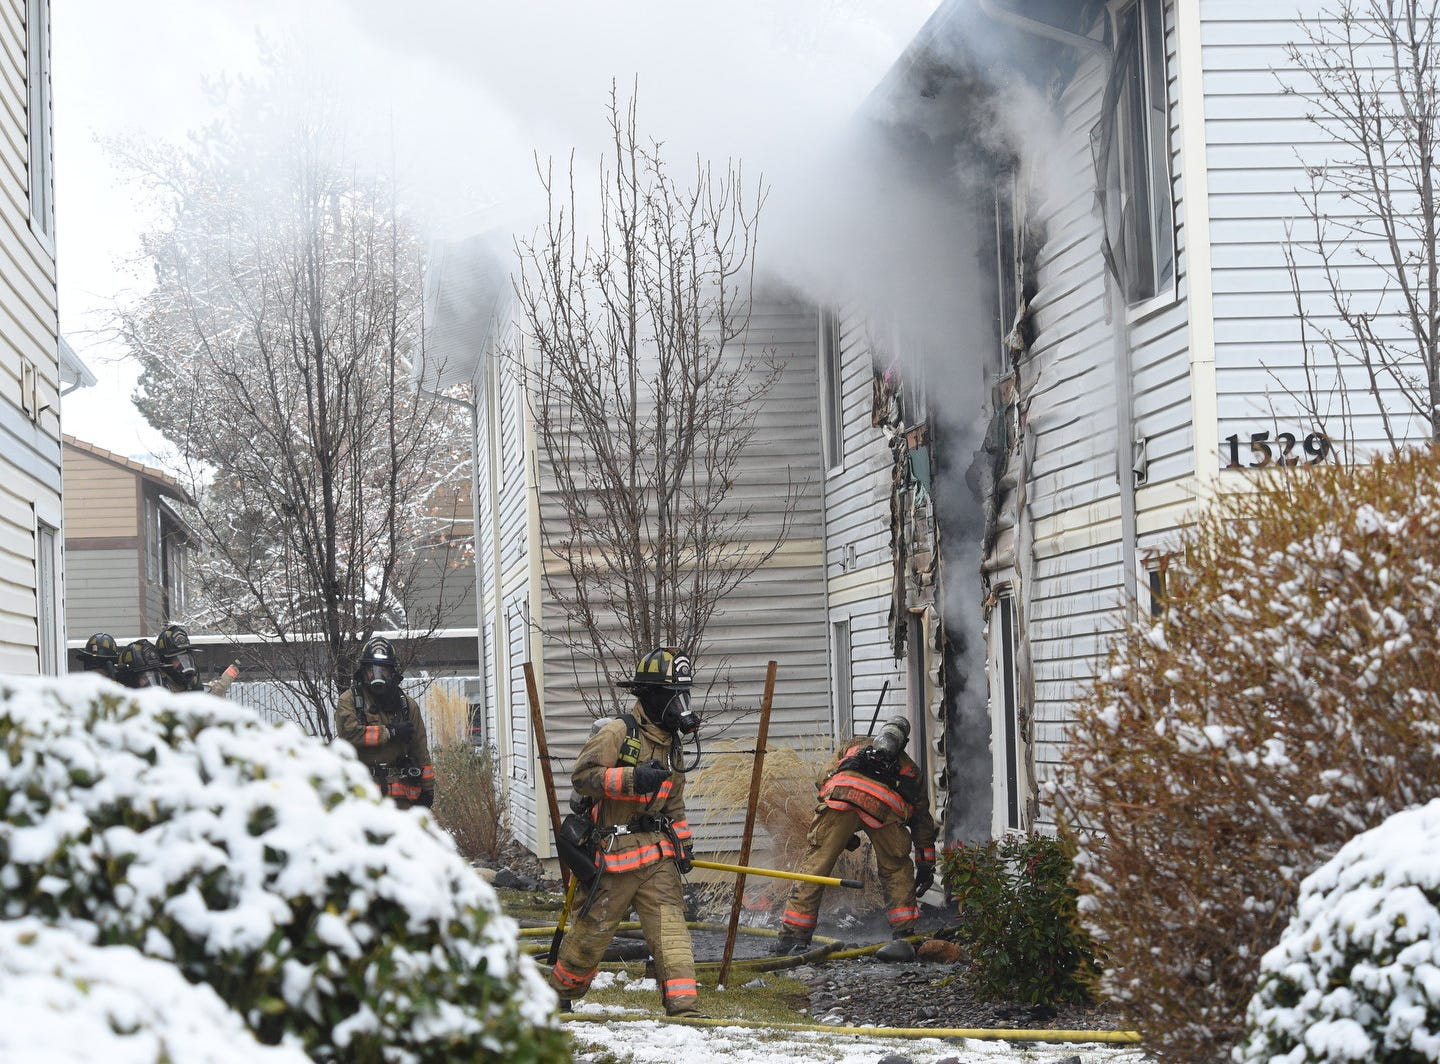 The Reno Fire Dept. works to put out a fire at the Meadow Wood Apartments in Reno on Feb. 5, 2019.